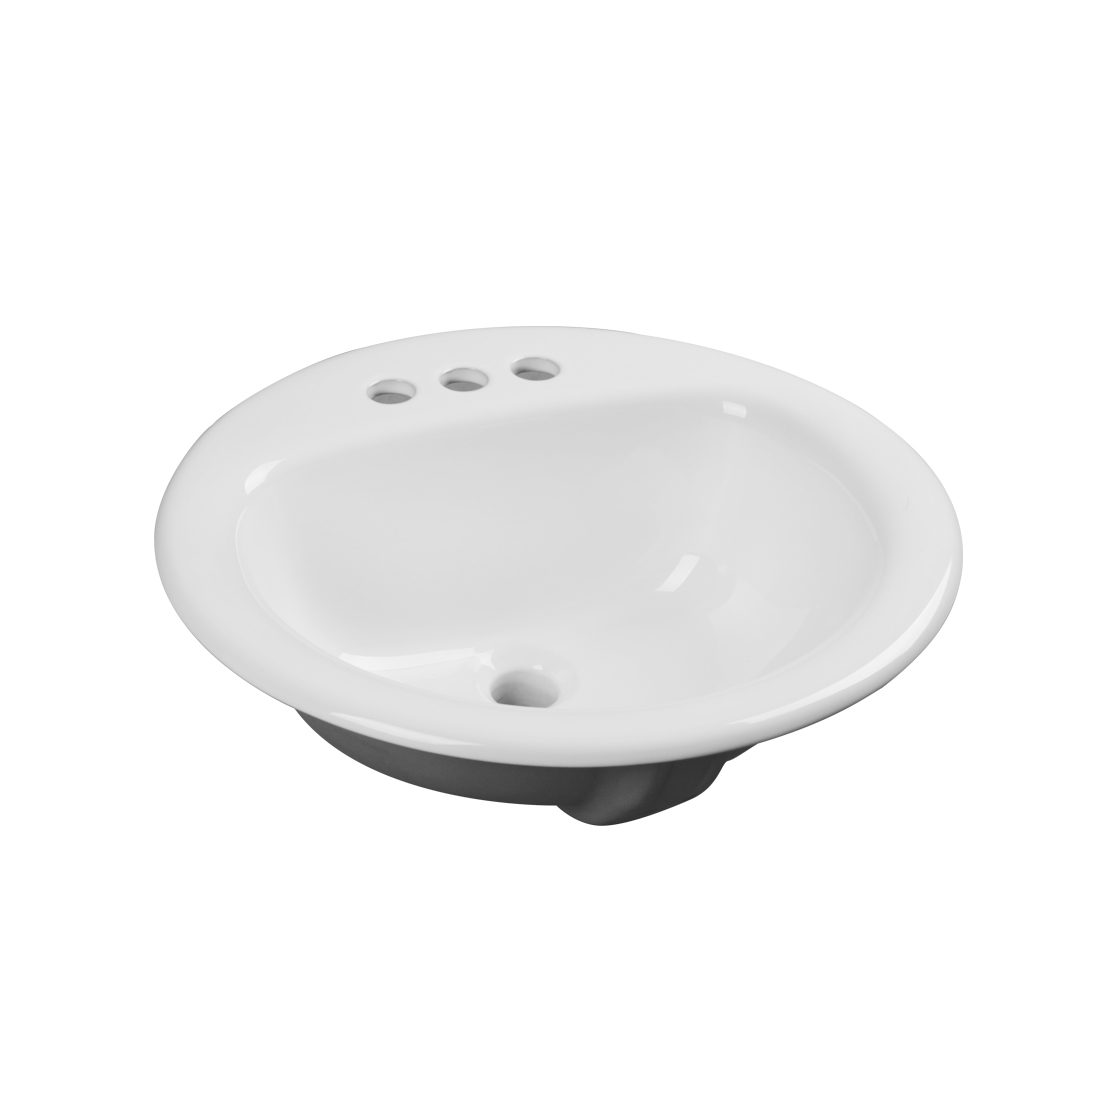 Edmonton Lavatory 3Hole 4inch White Front View